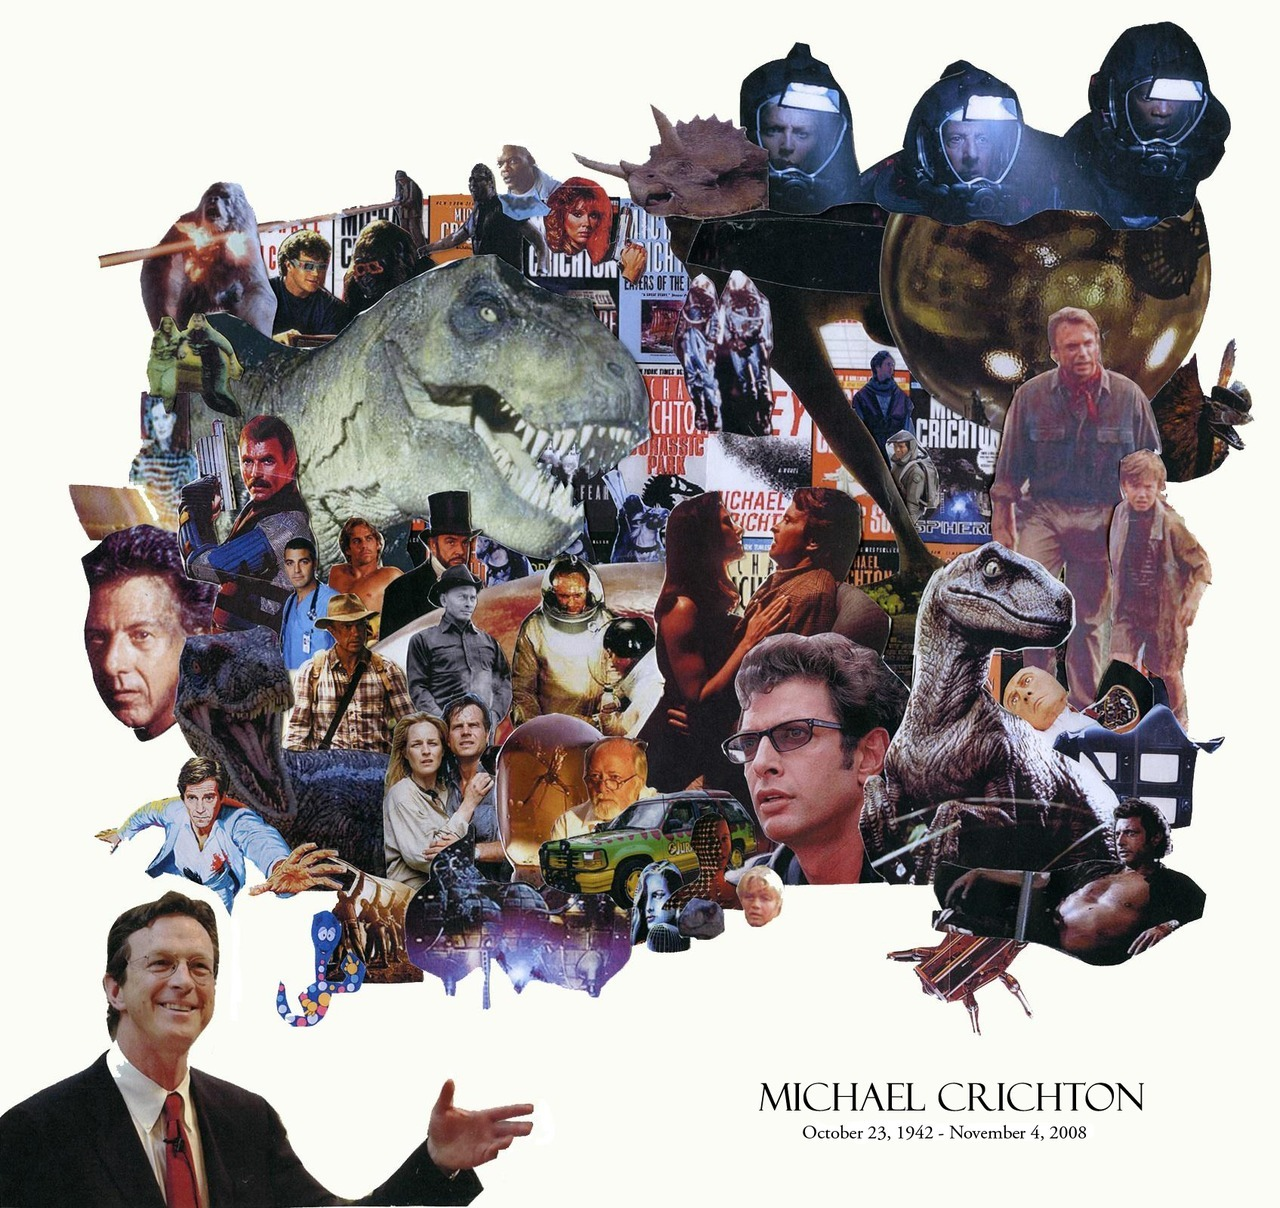 bookish:  mcnallyjackson:  Happy Michael Crichton Day everyone! Crichton would have turned 70 today. Go out and celebrate the man. Teach someone something incredibly interesting through the medium of relentless action and heart-pounding suspense.  Bookish collages are the best.  We're a day late! Check the catalogue for his books : http://goo.gl/w4u47